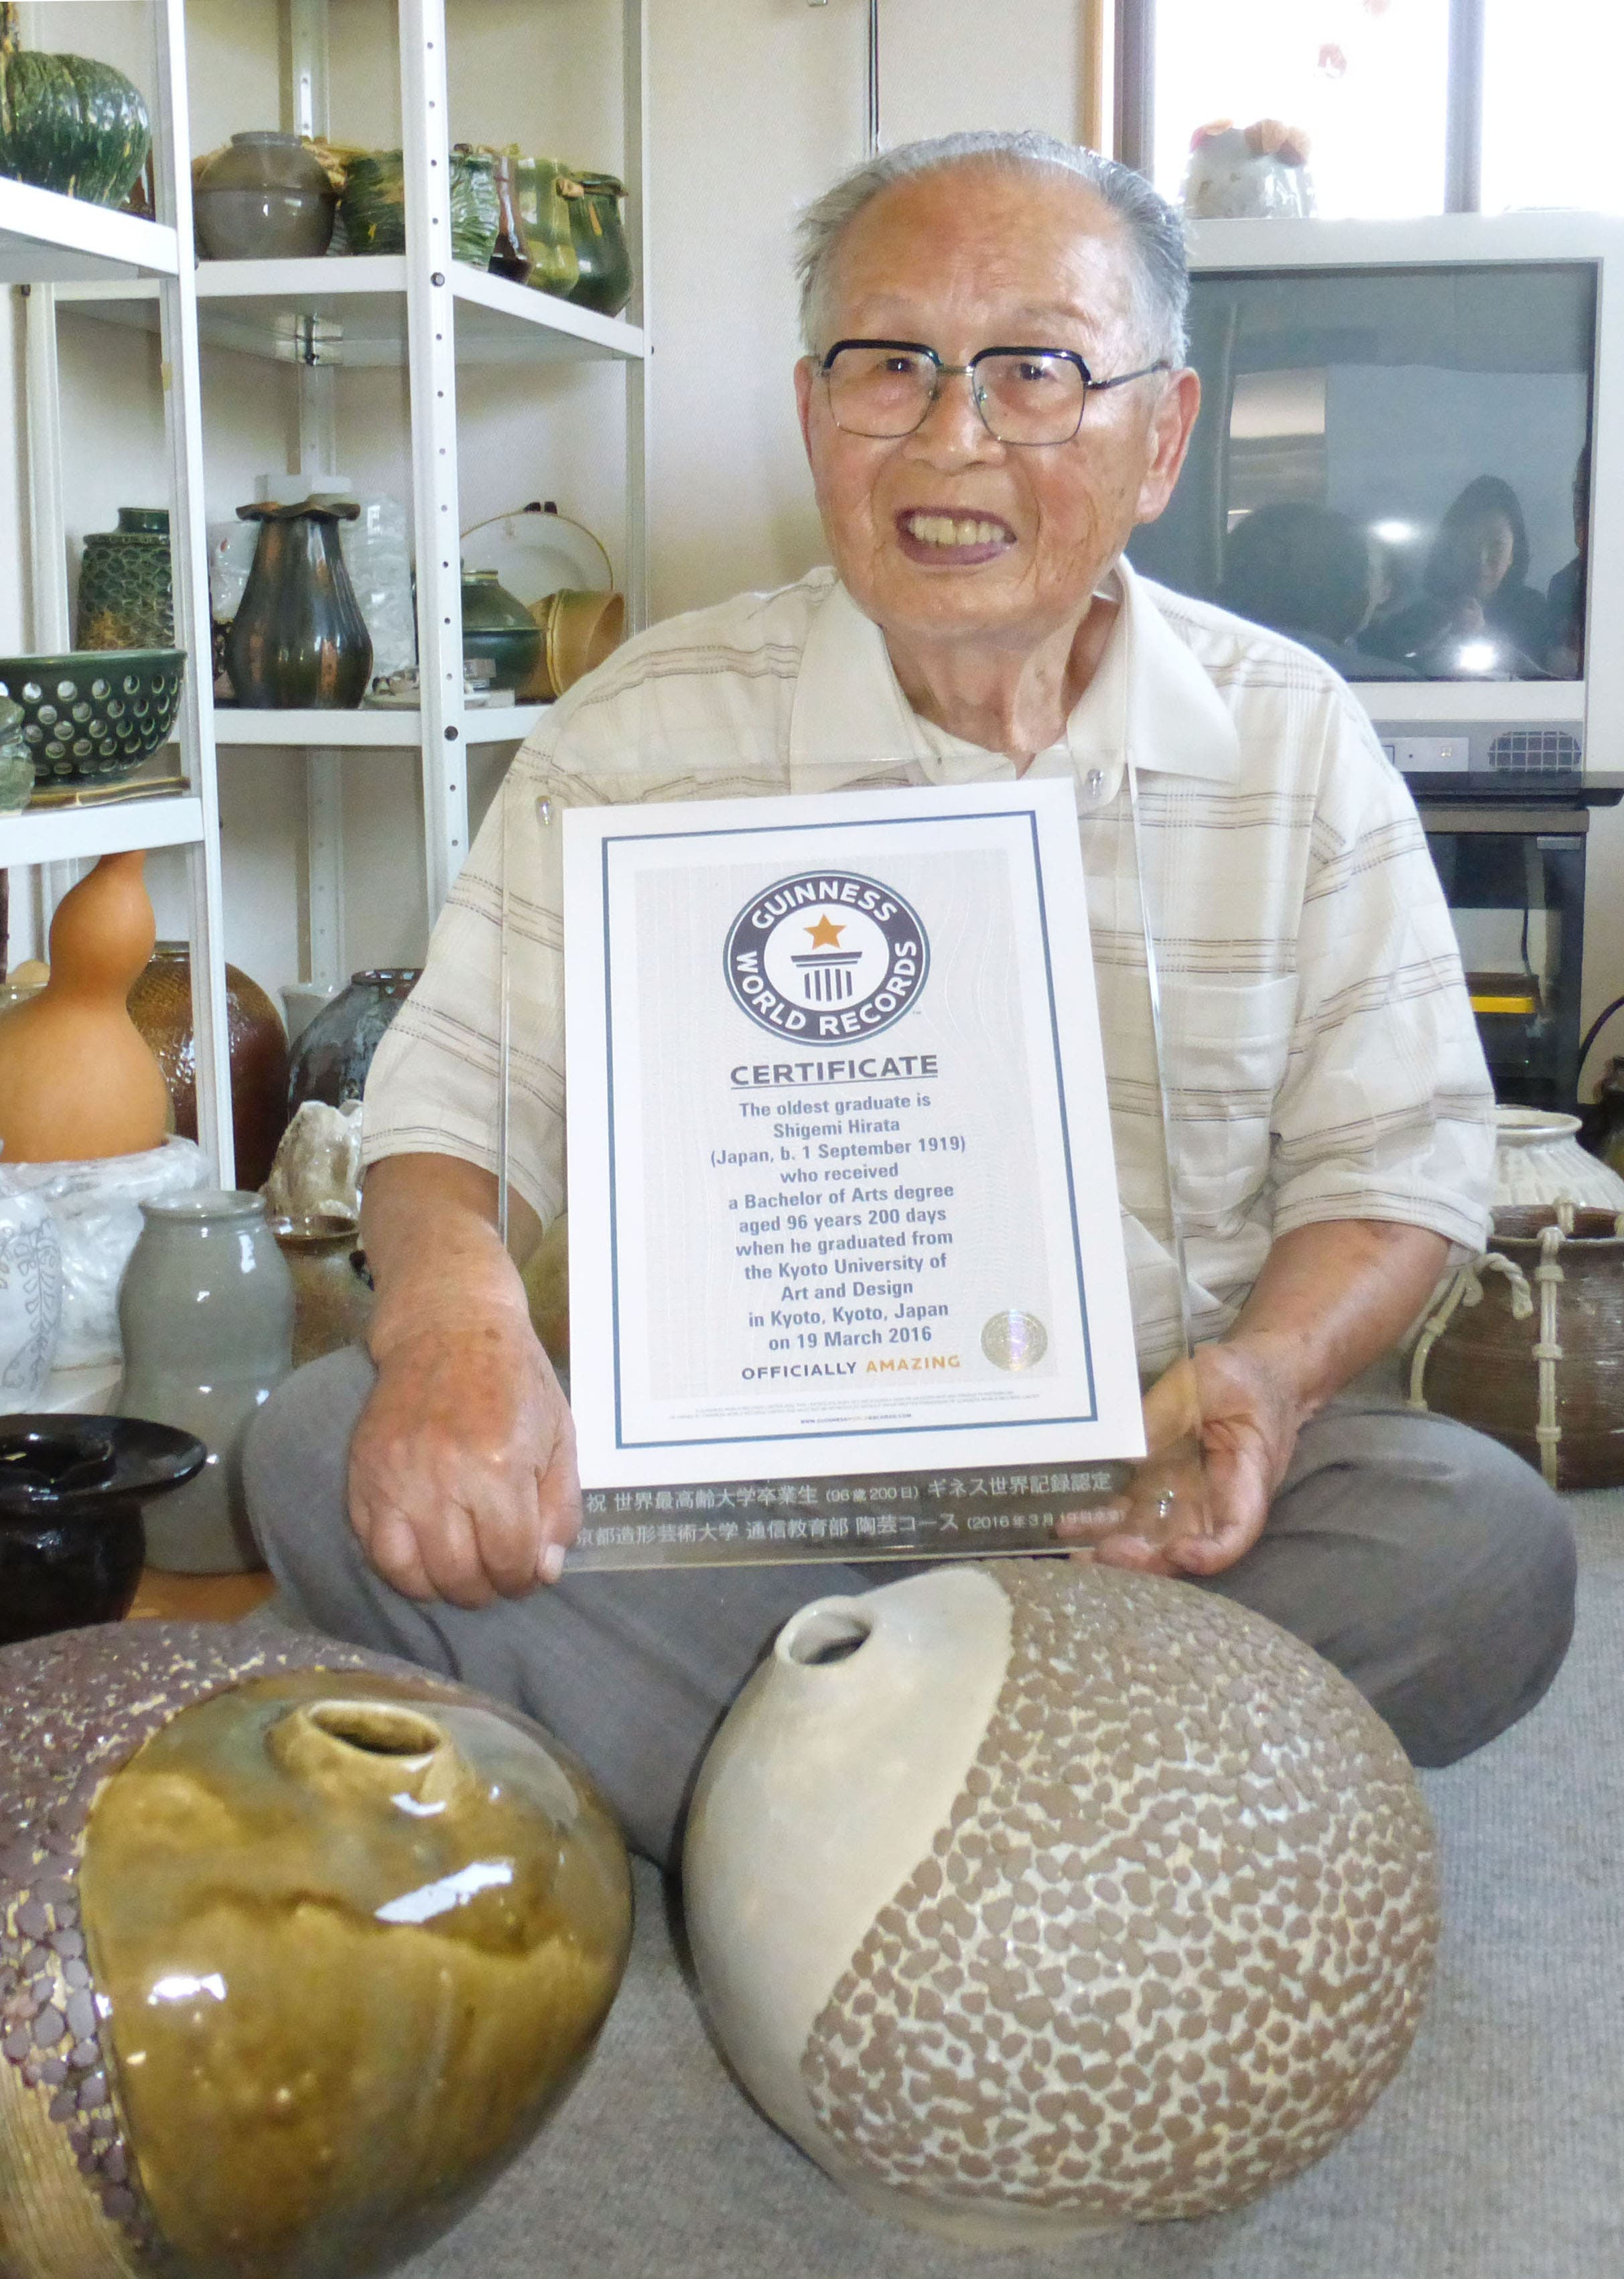 Hirata, who took 11 years to complete his ceramic arts course after taking up pottery as a pensioner, insisted he was not done setting records. (Photo courtesy:  Japan Times)